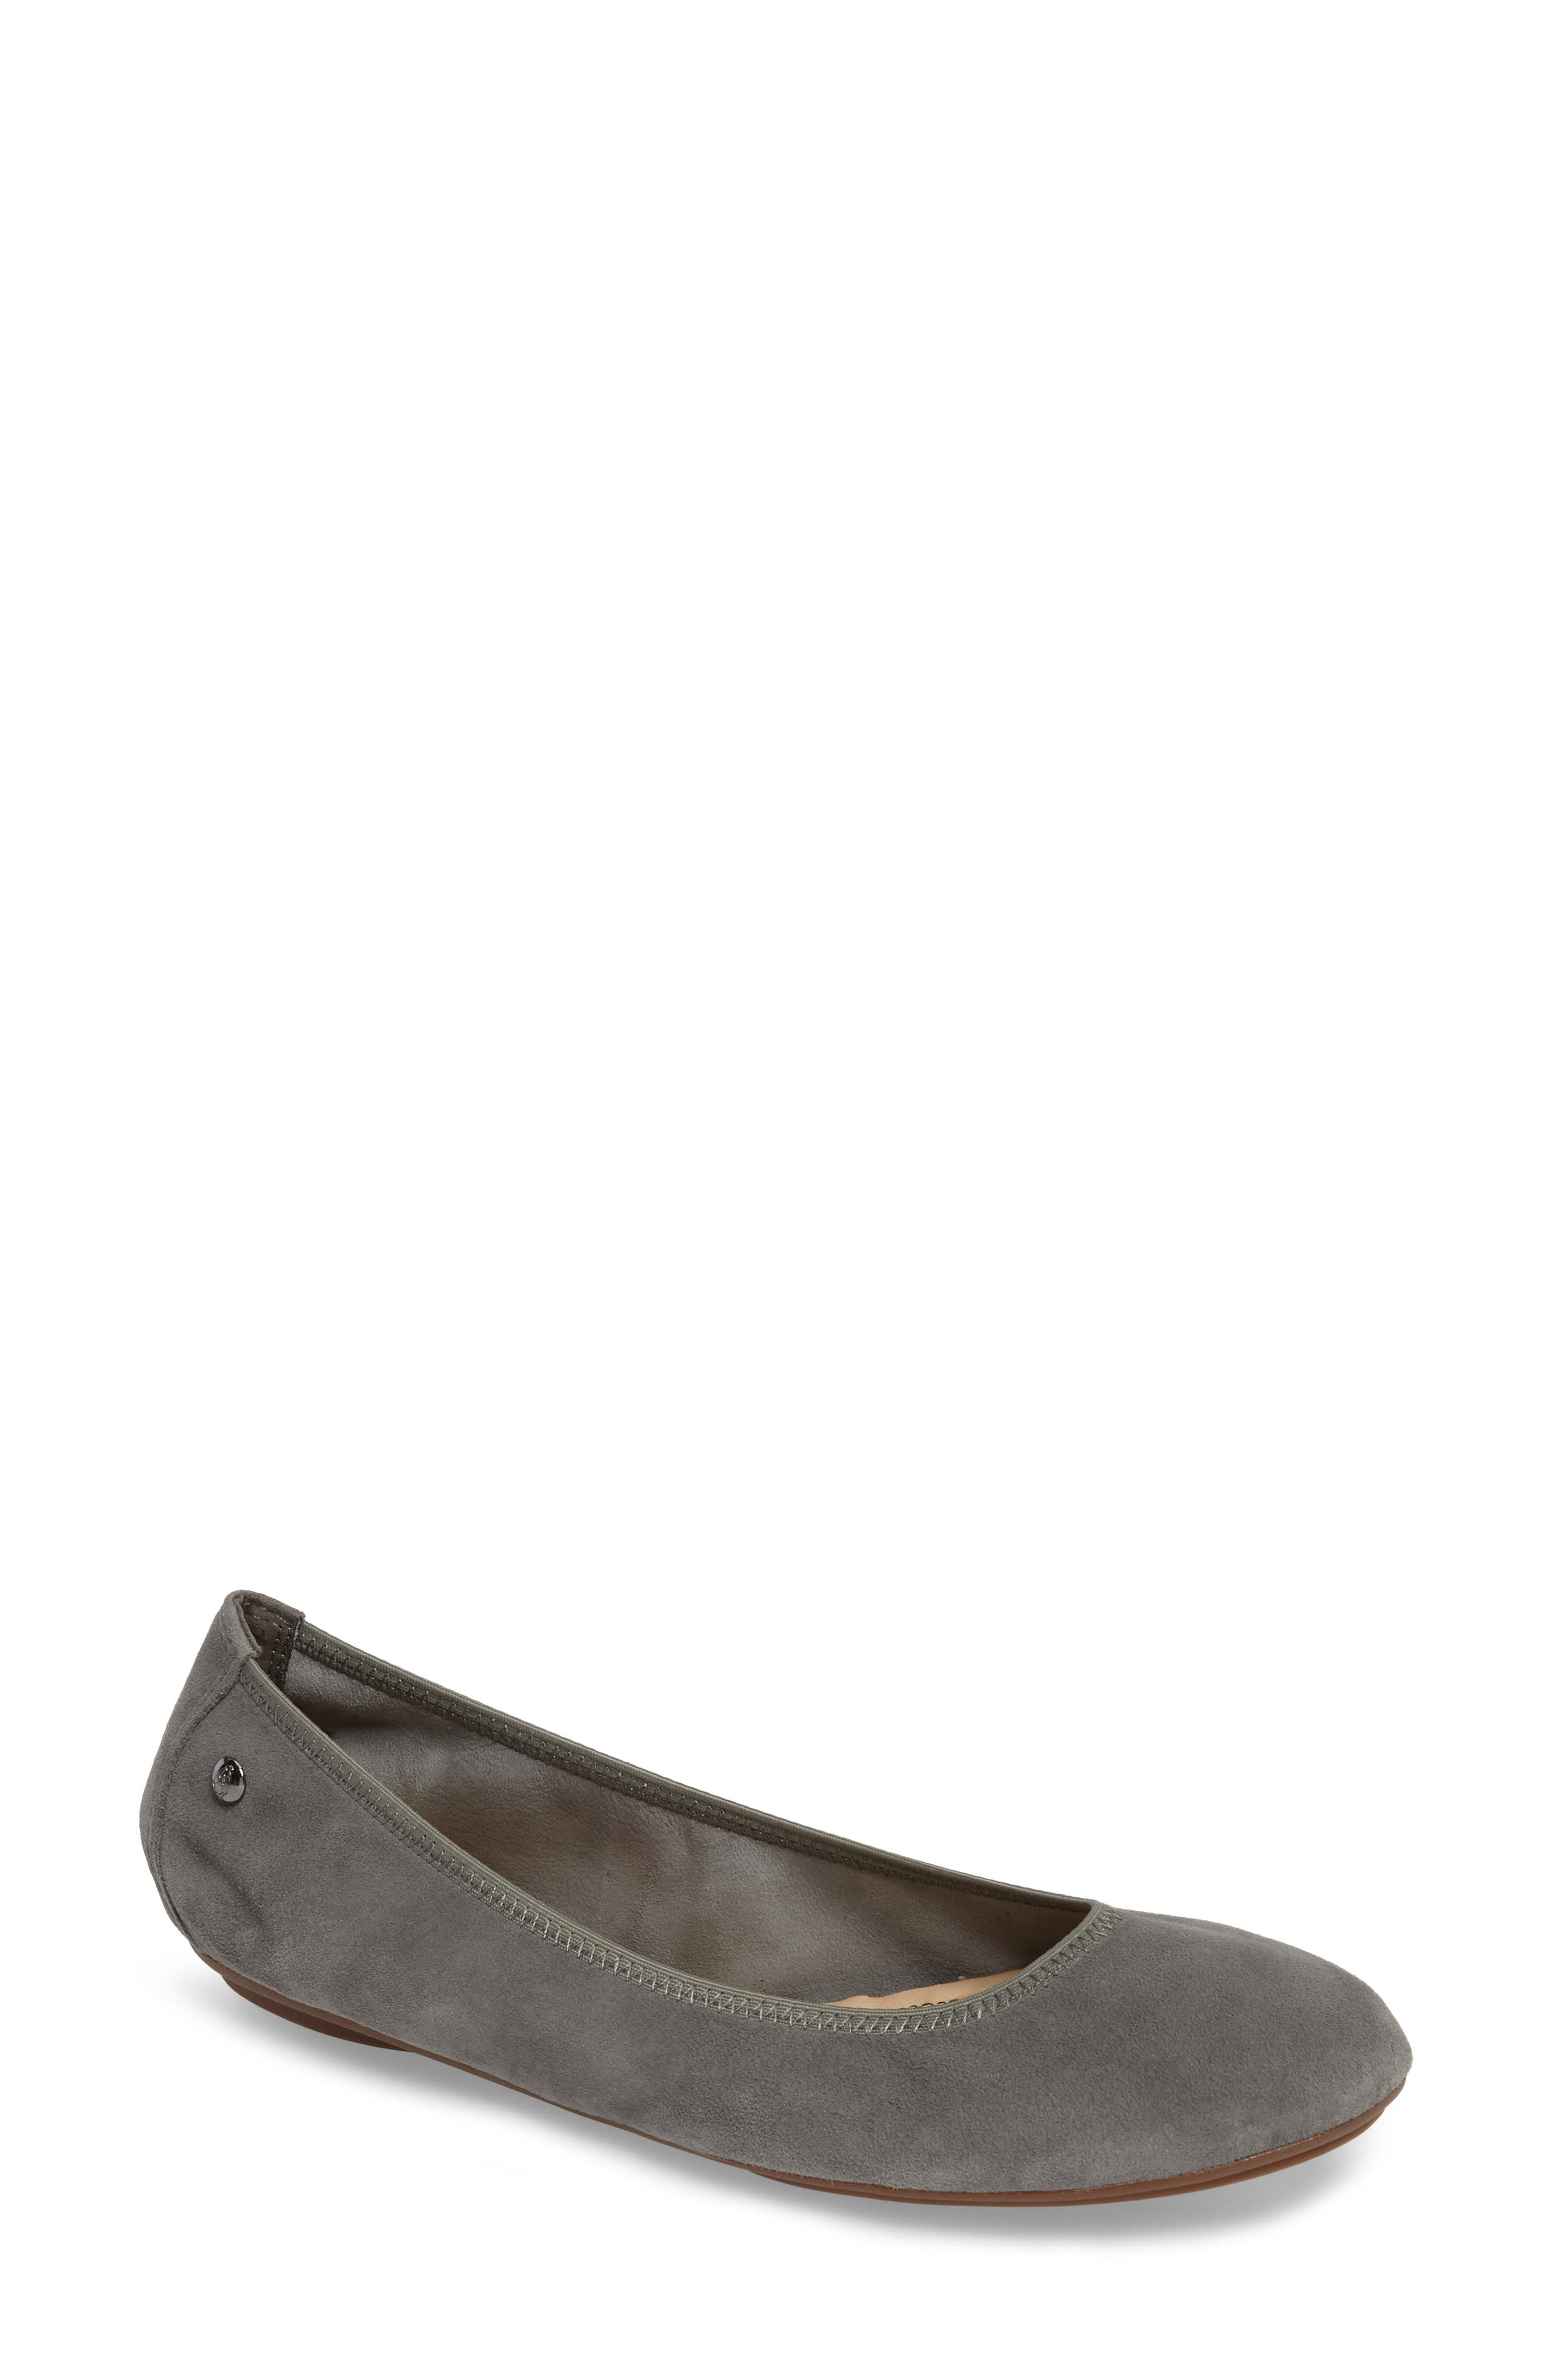 'Chaste' Ballet Flat,                             Main thumbnail 1, color,                             Dusty Green Suede